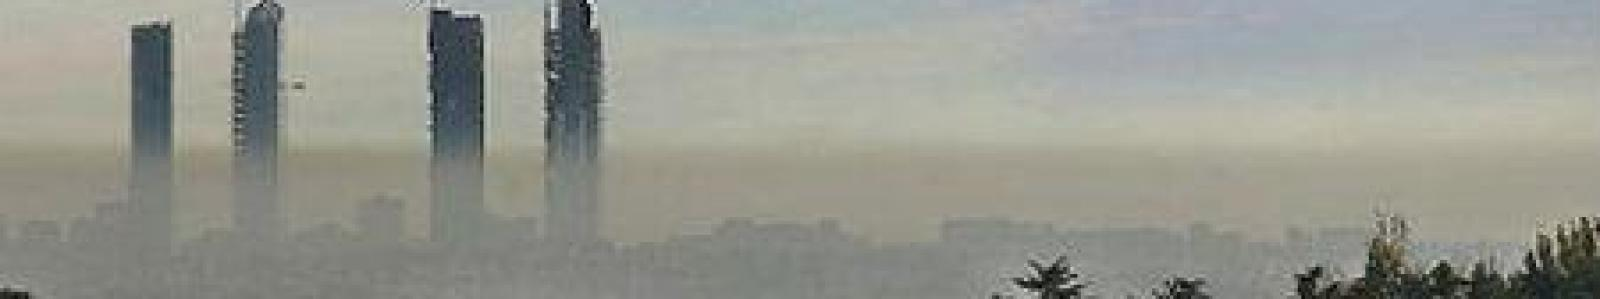 Pollution in Madrid, Spain